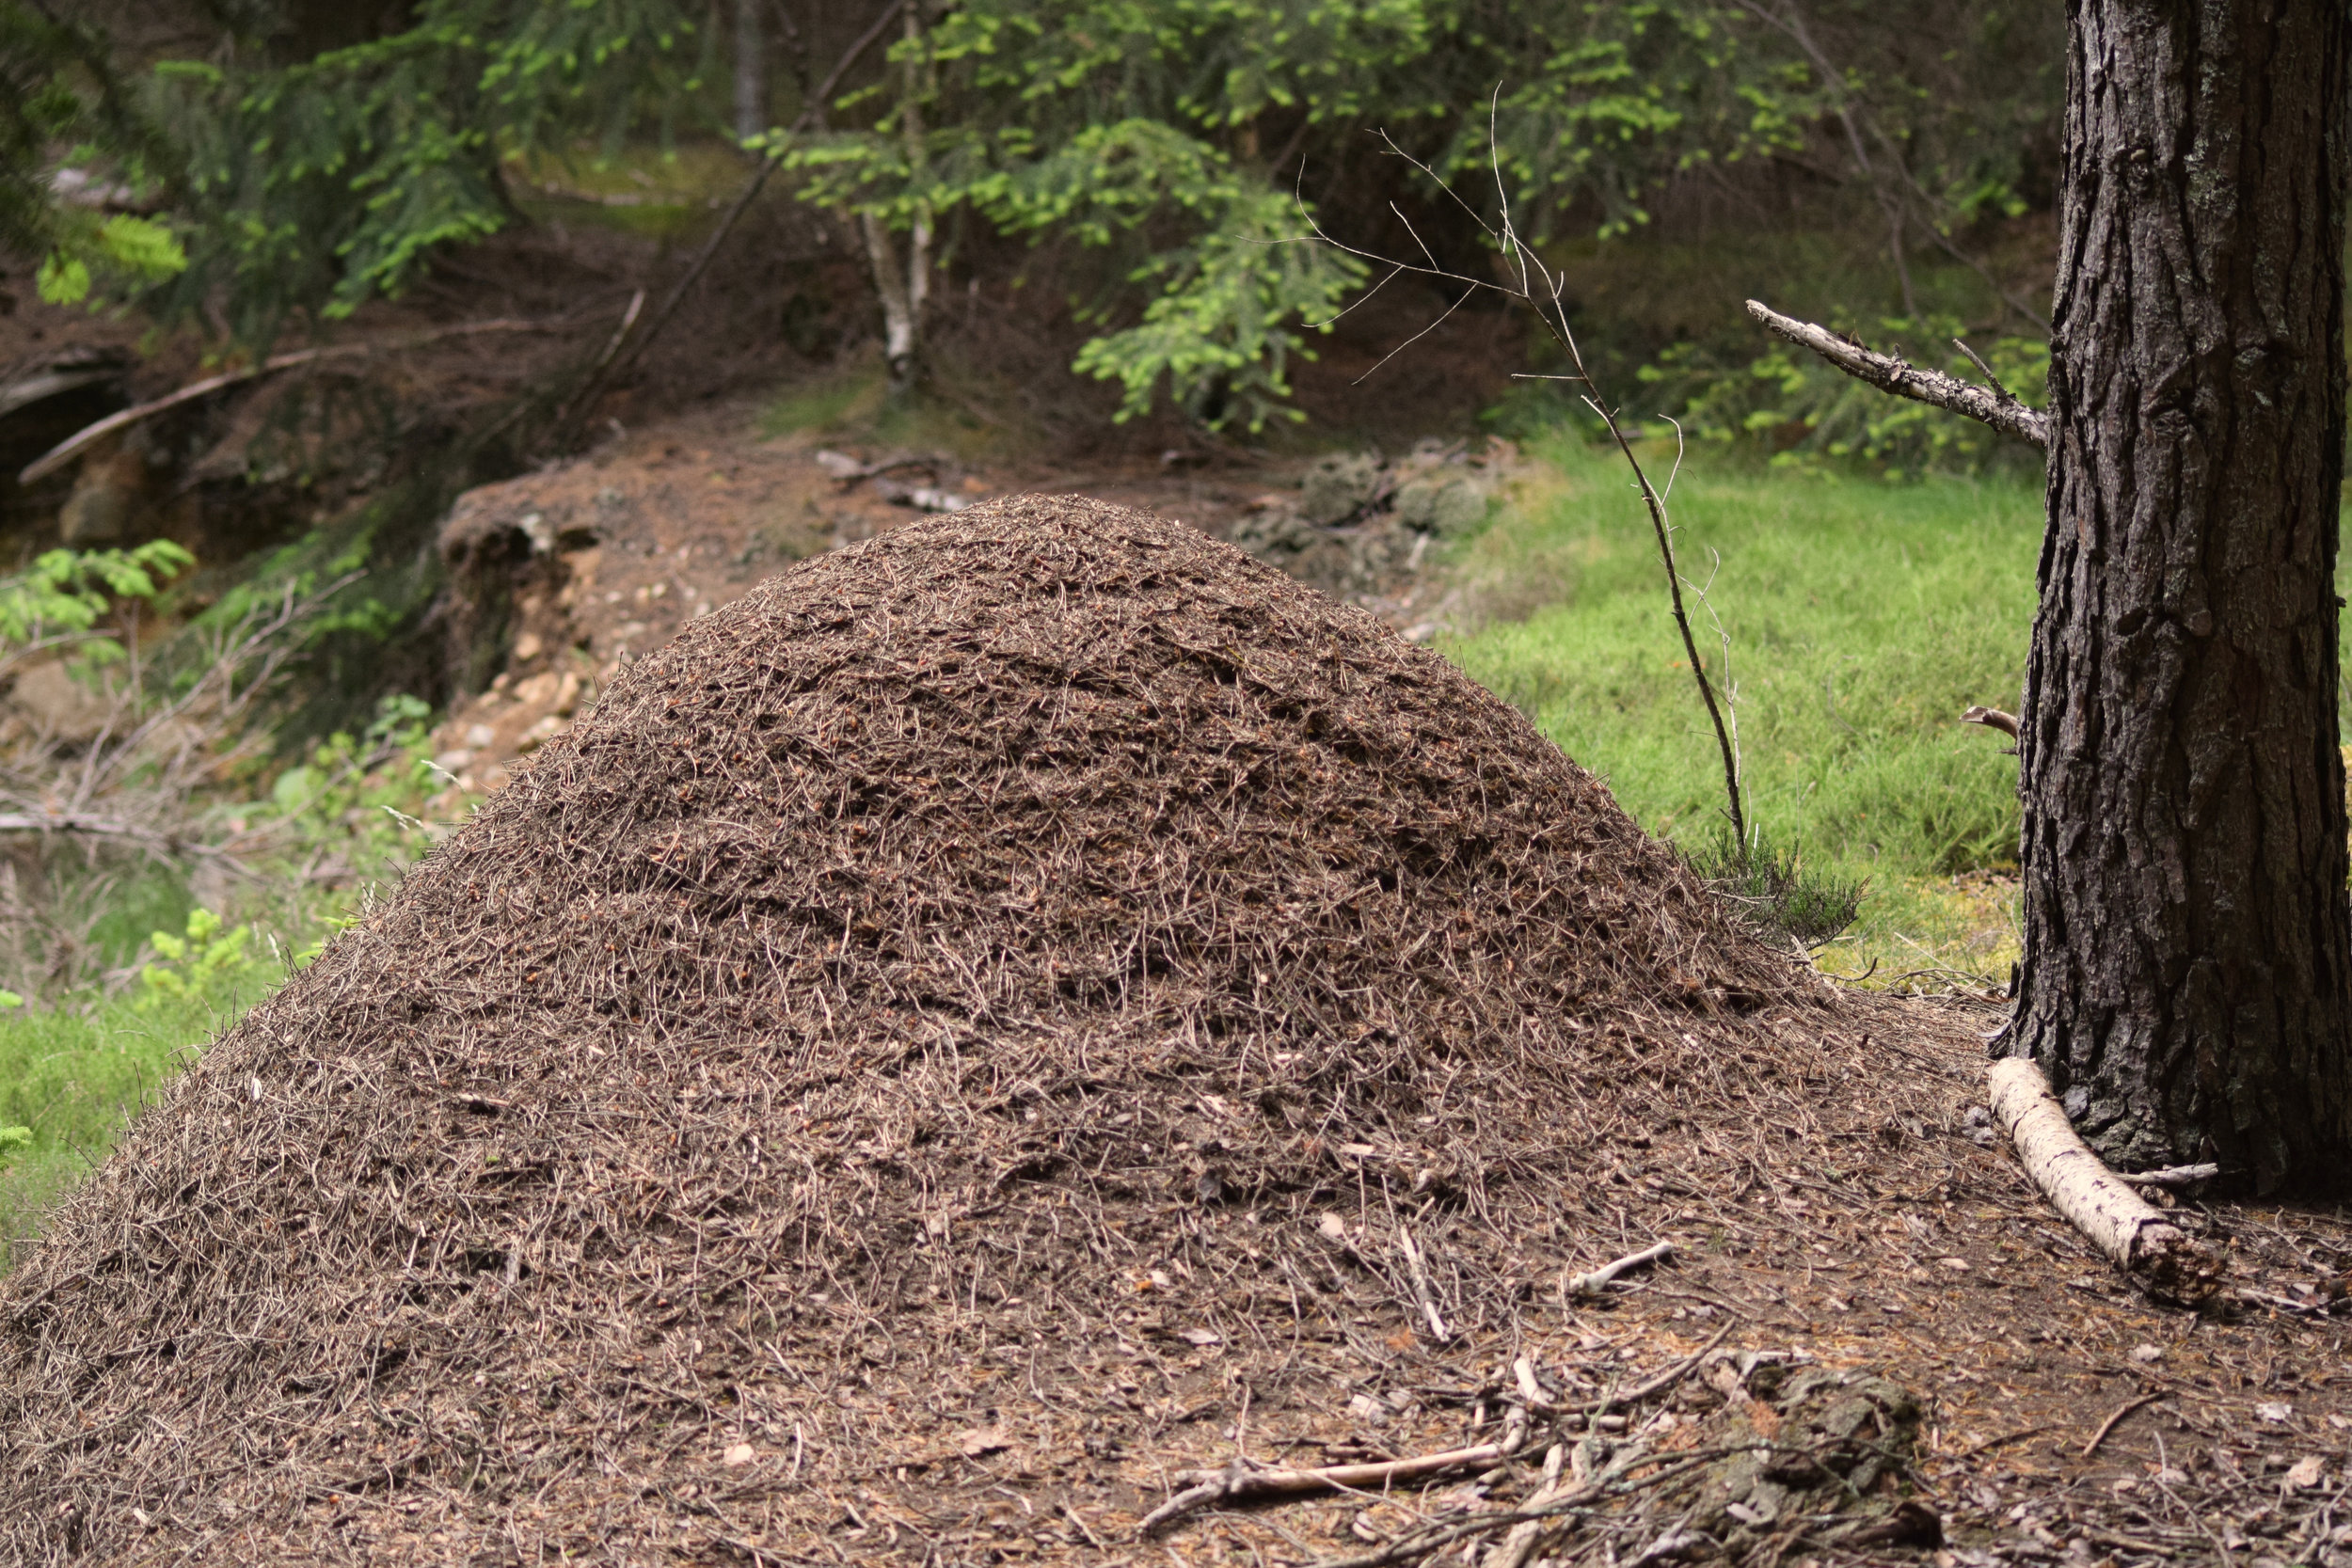 Scottish Wood Ant Nest - The largest of the nests found when surveying on Glen Tanar Estate